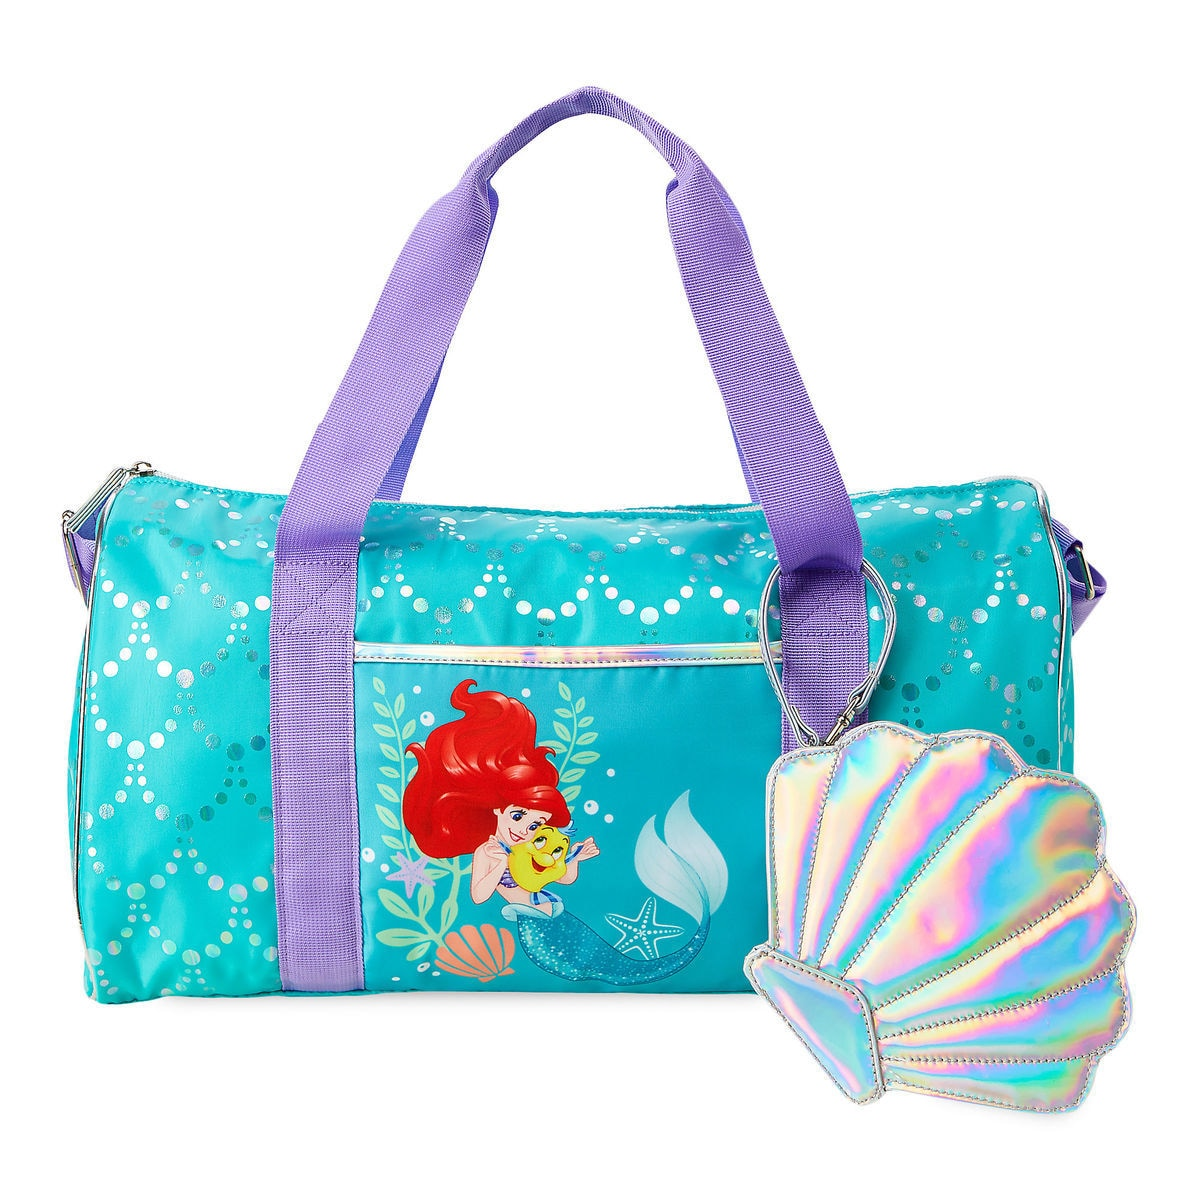 cc9e626a2e04 Product Image of Ariel and Flounder Duffle Bag for Kids - The Little Mermaid    1